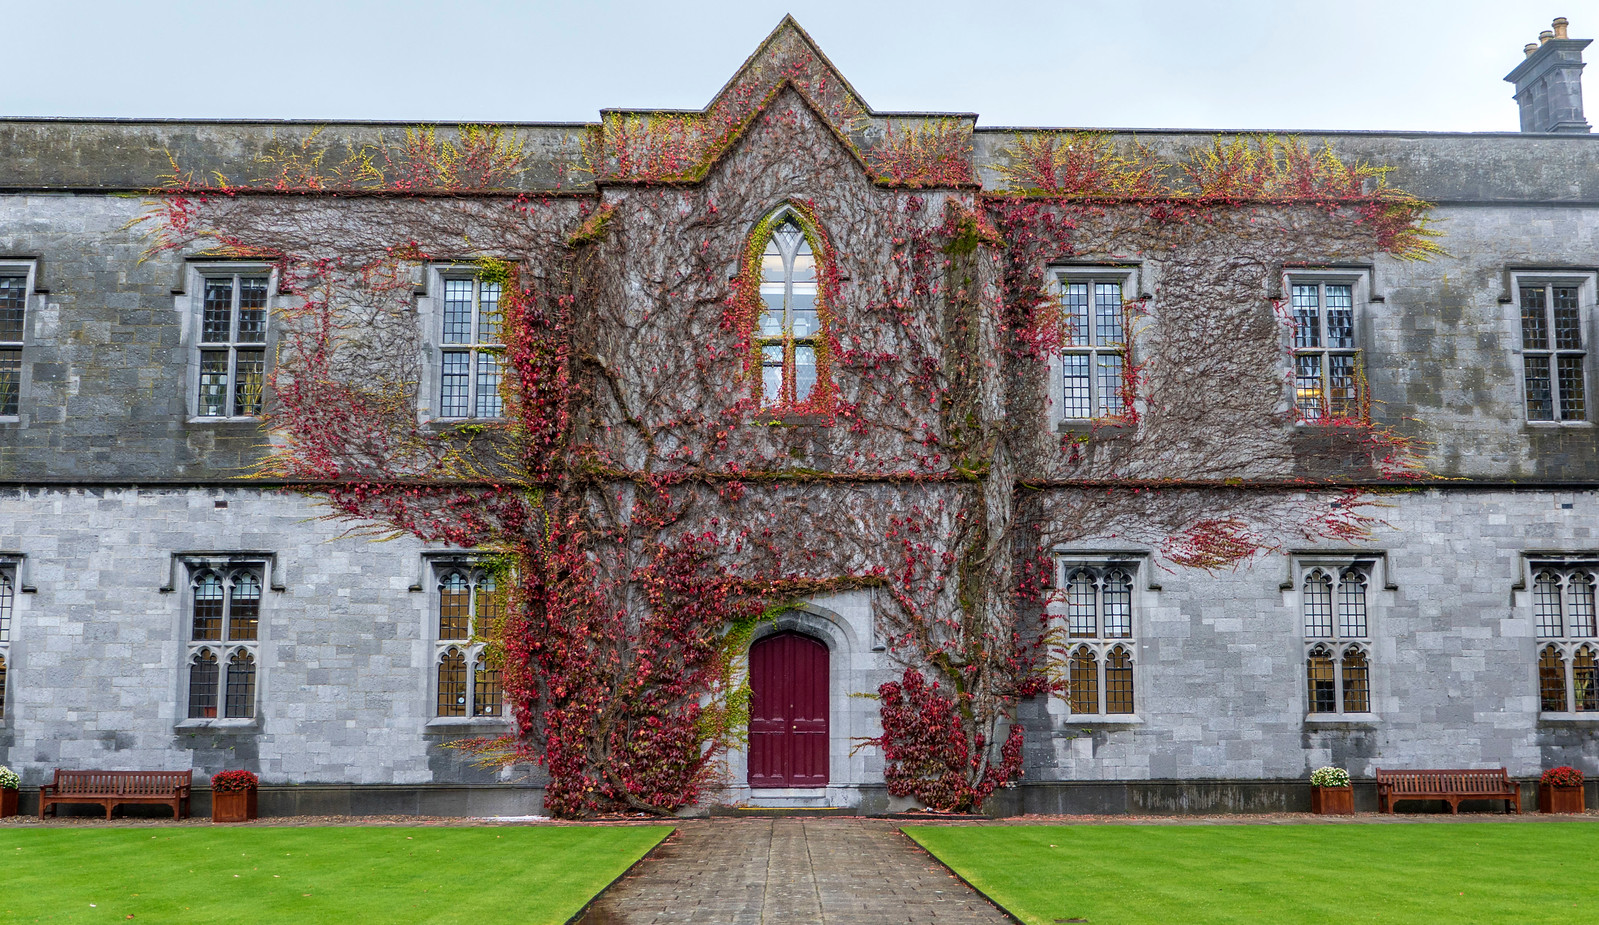 National University of Ireland Galway - What to do in Galway in a day